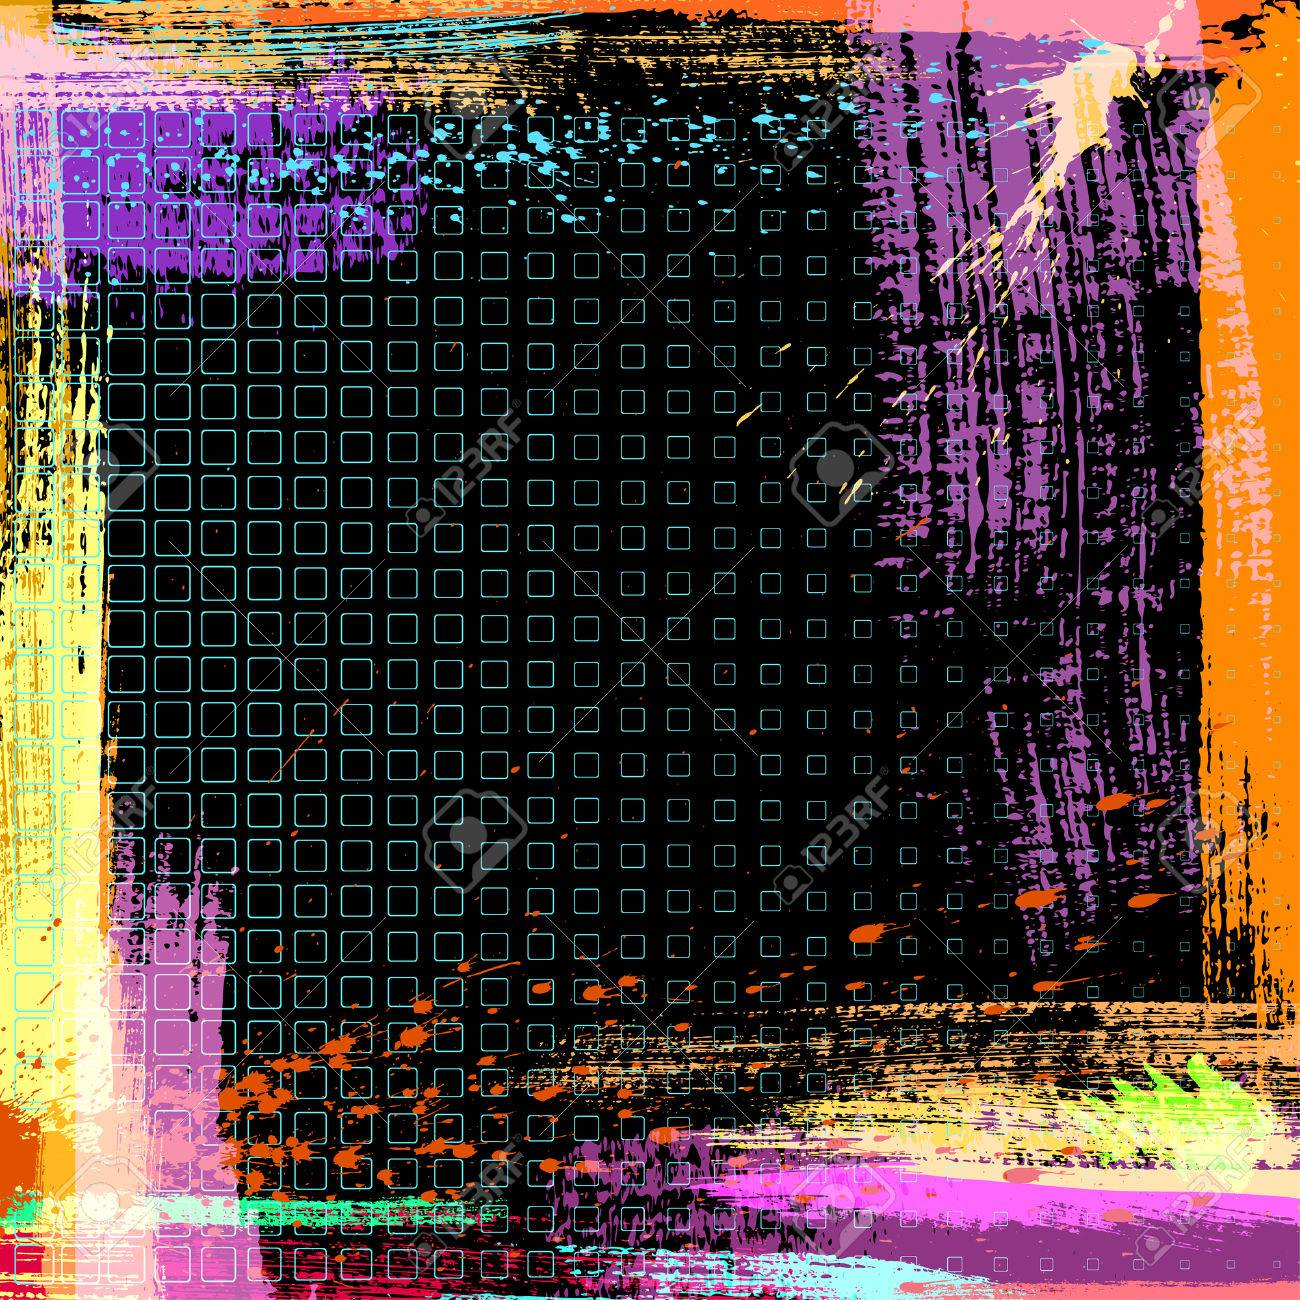 abstract grunge background - 8975623